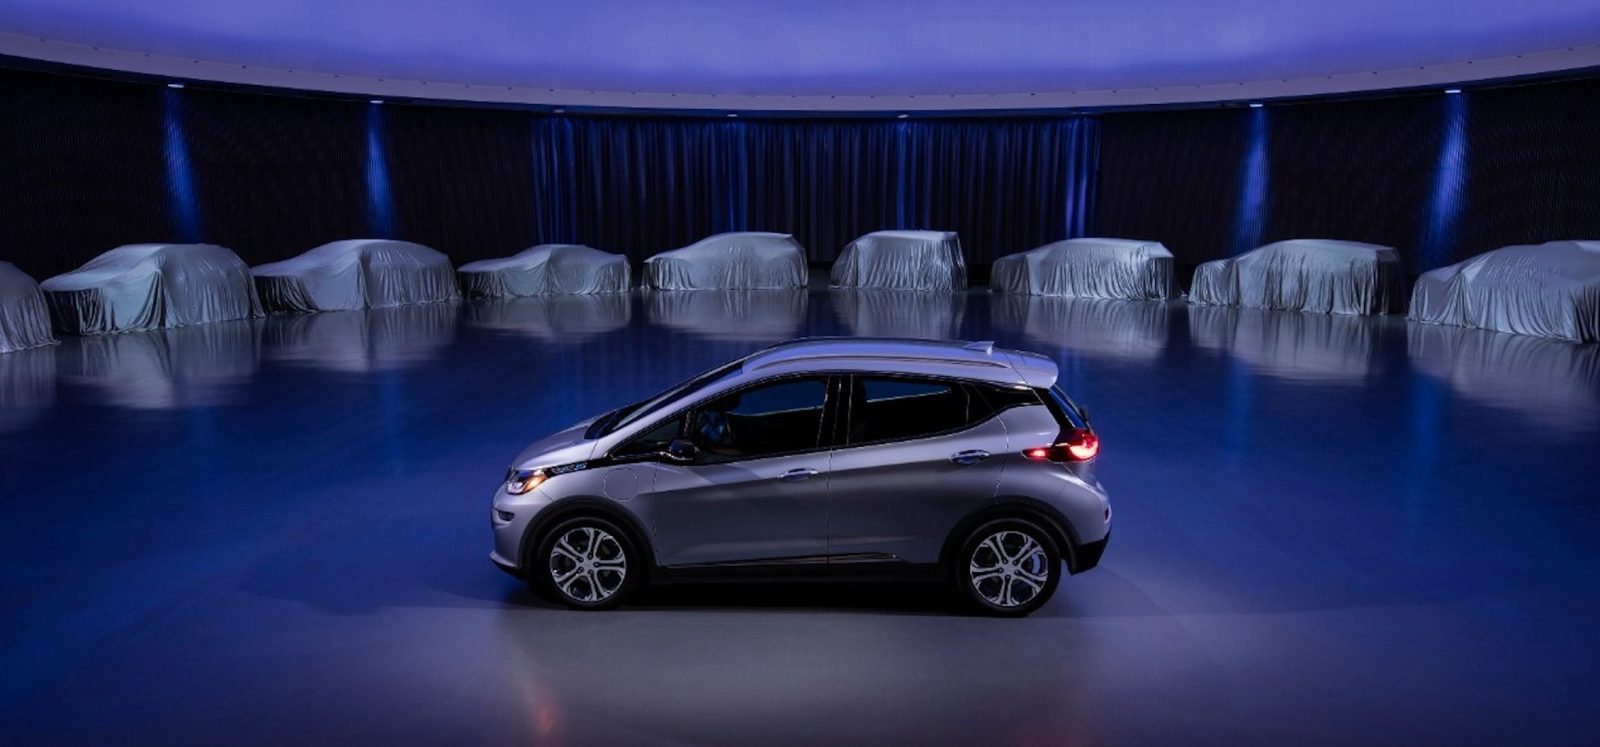 Gm Promised To Introduce 2 New Evs By Now Where Are They